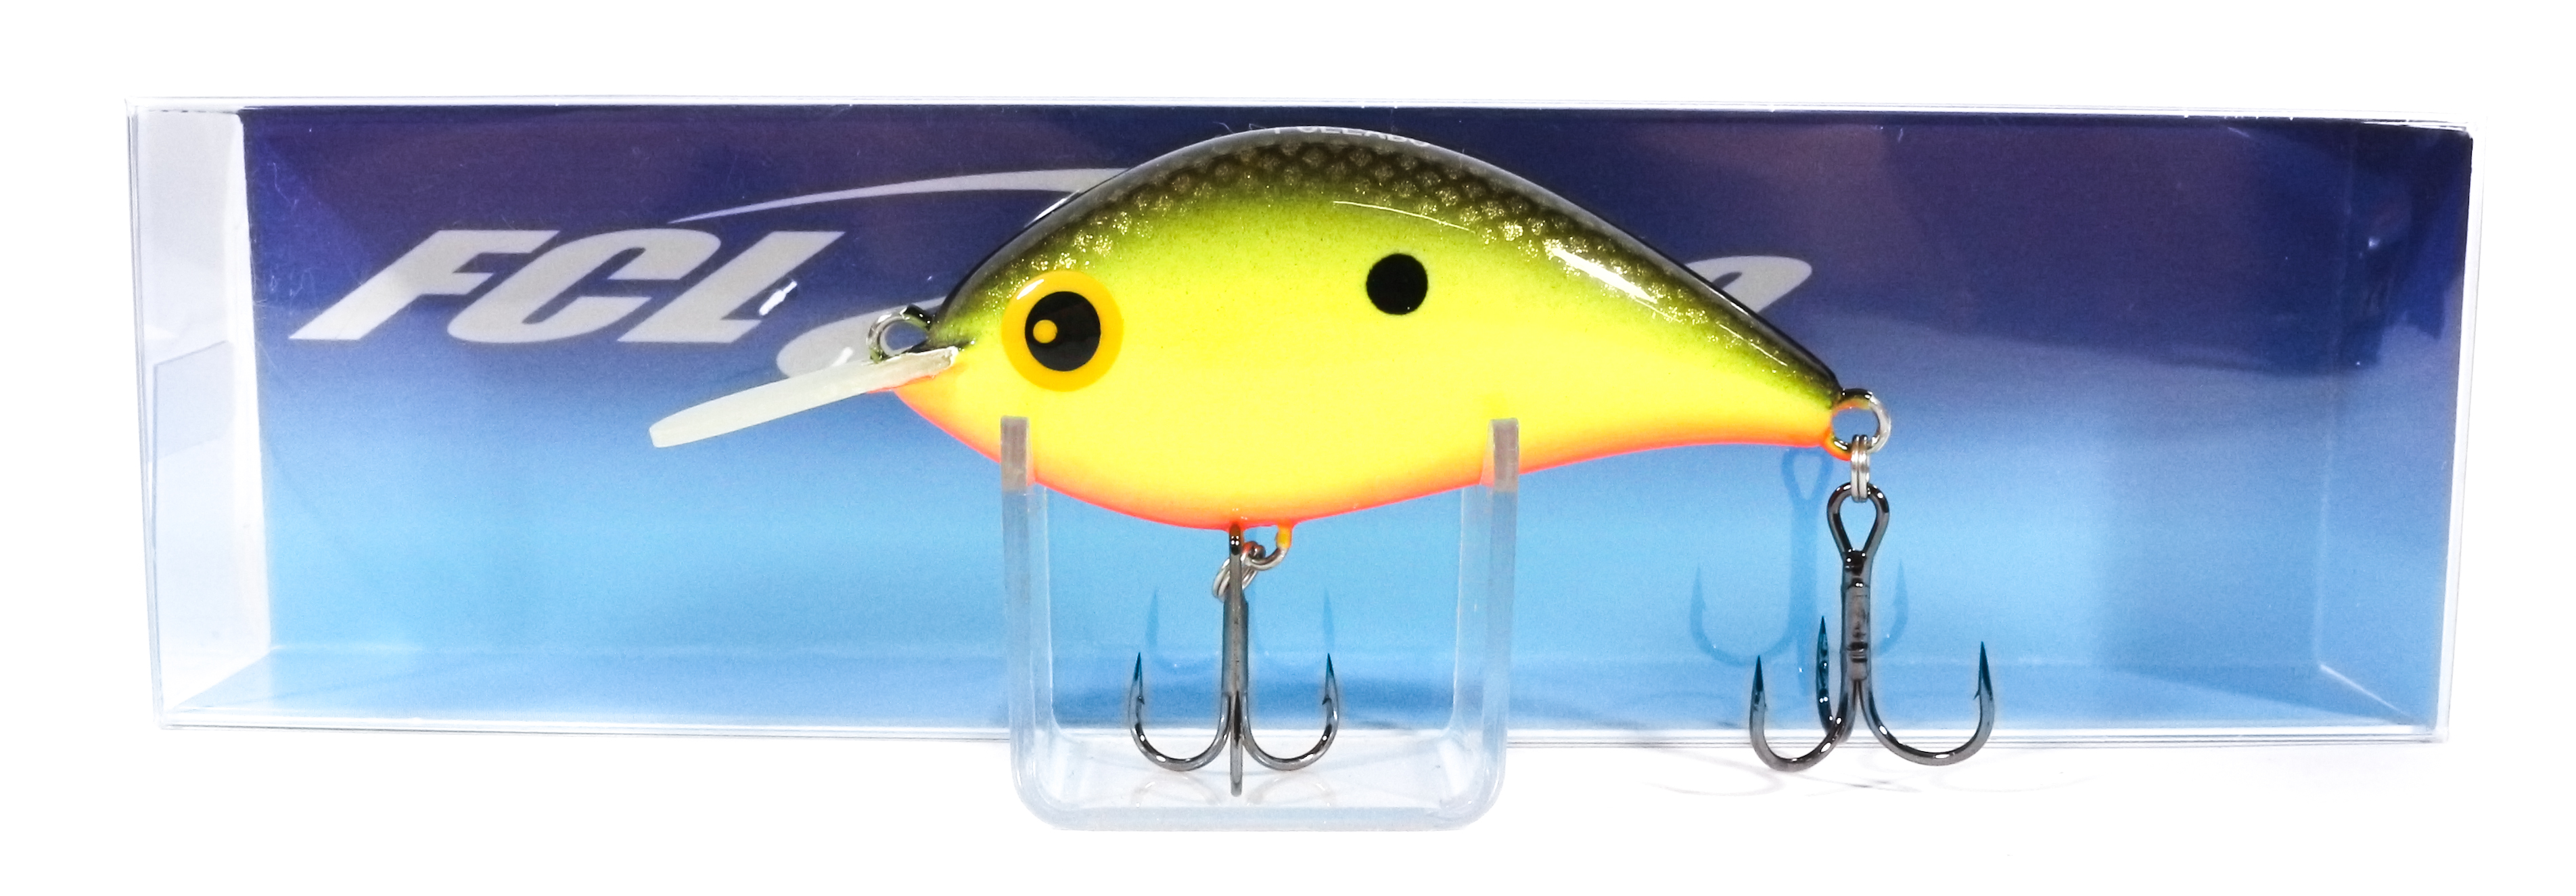 FCL Labo Lure TKC 60 Floating Lure CBK (3863)